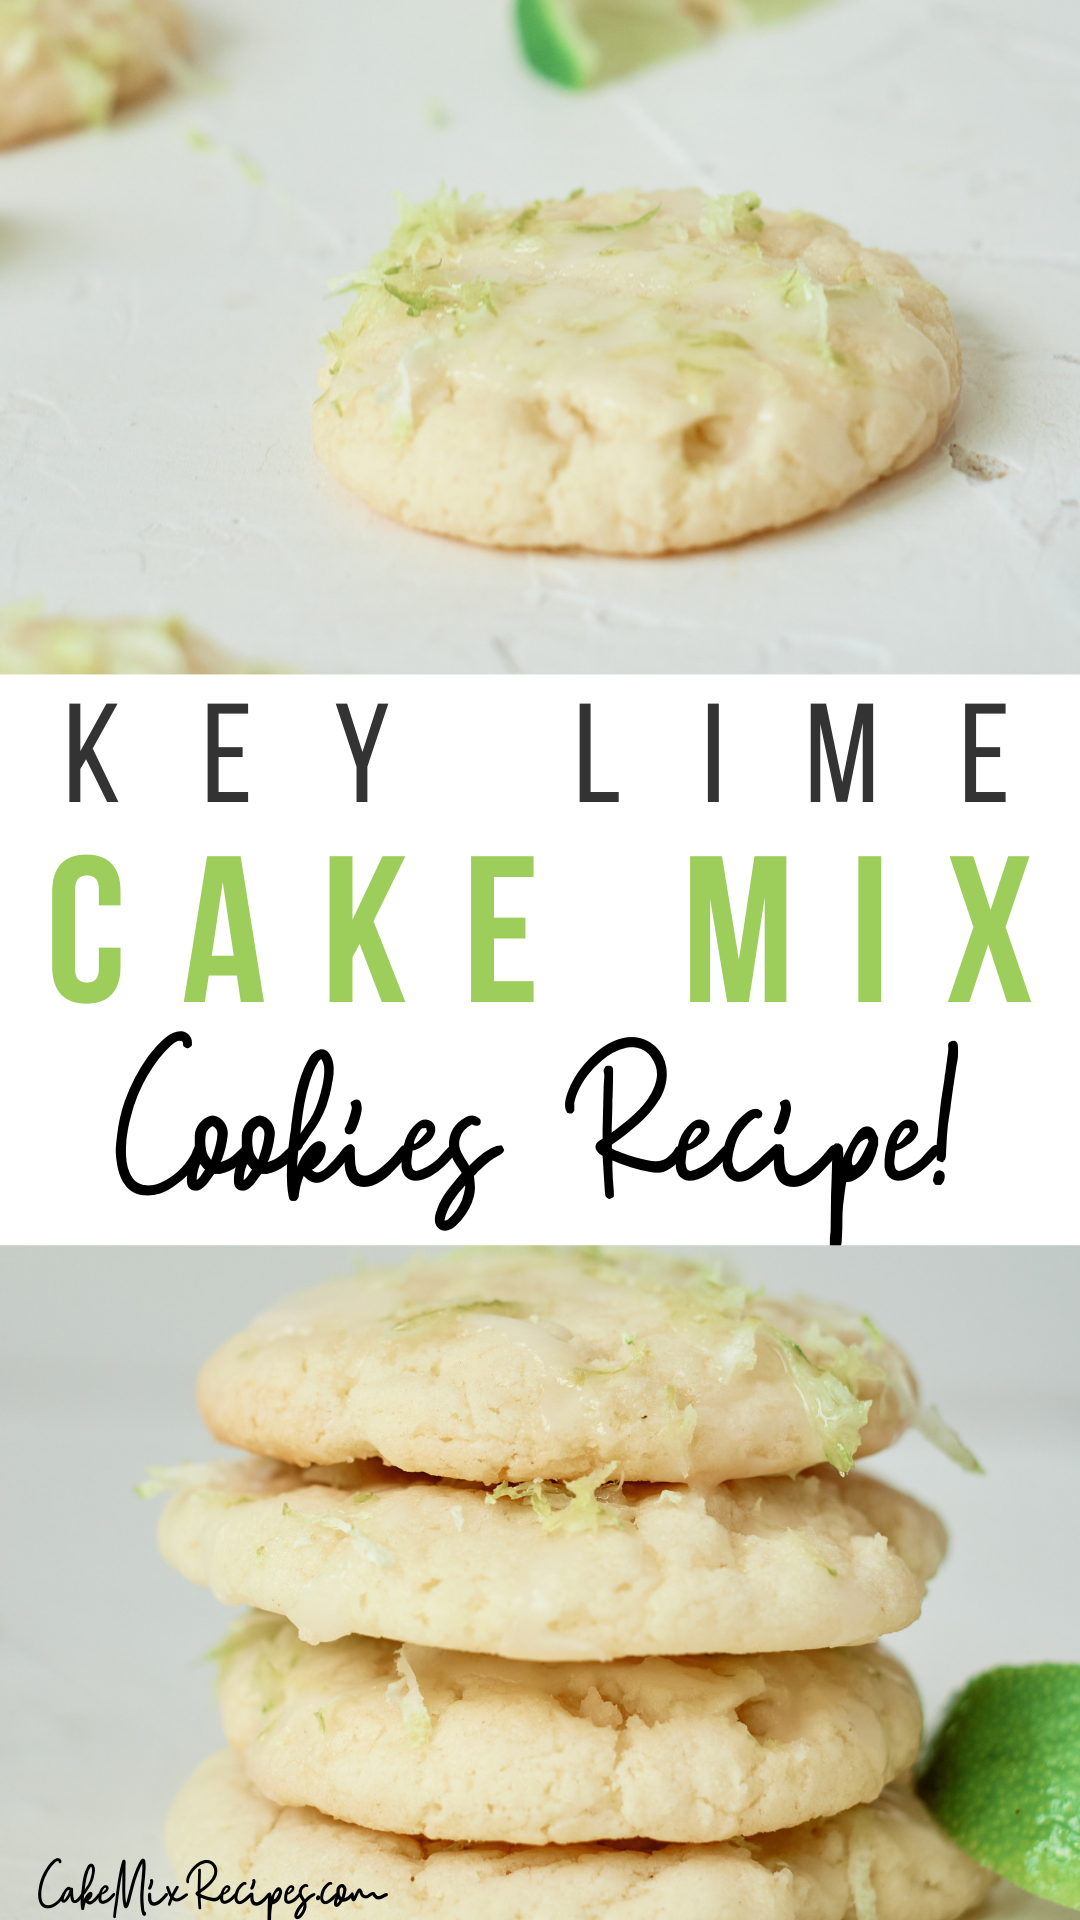 pin showing the finished key lime cake mix cookies ready to eat with title across the middle.